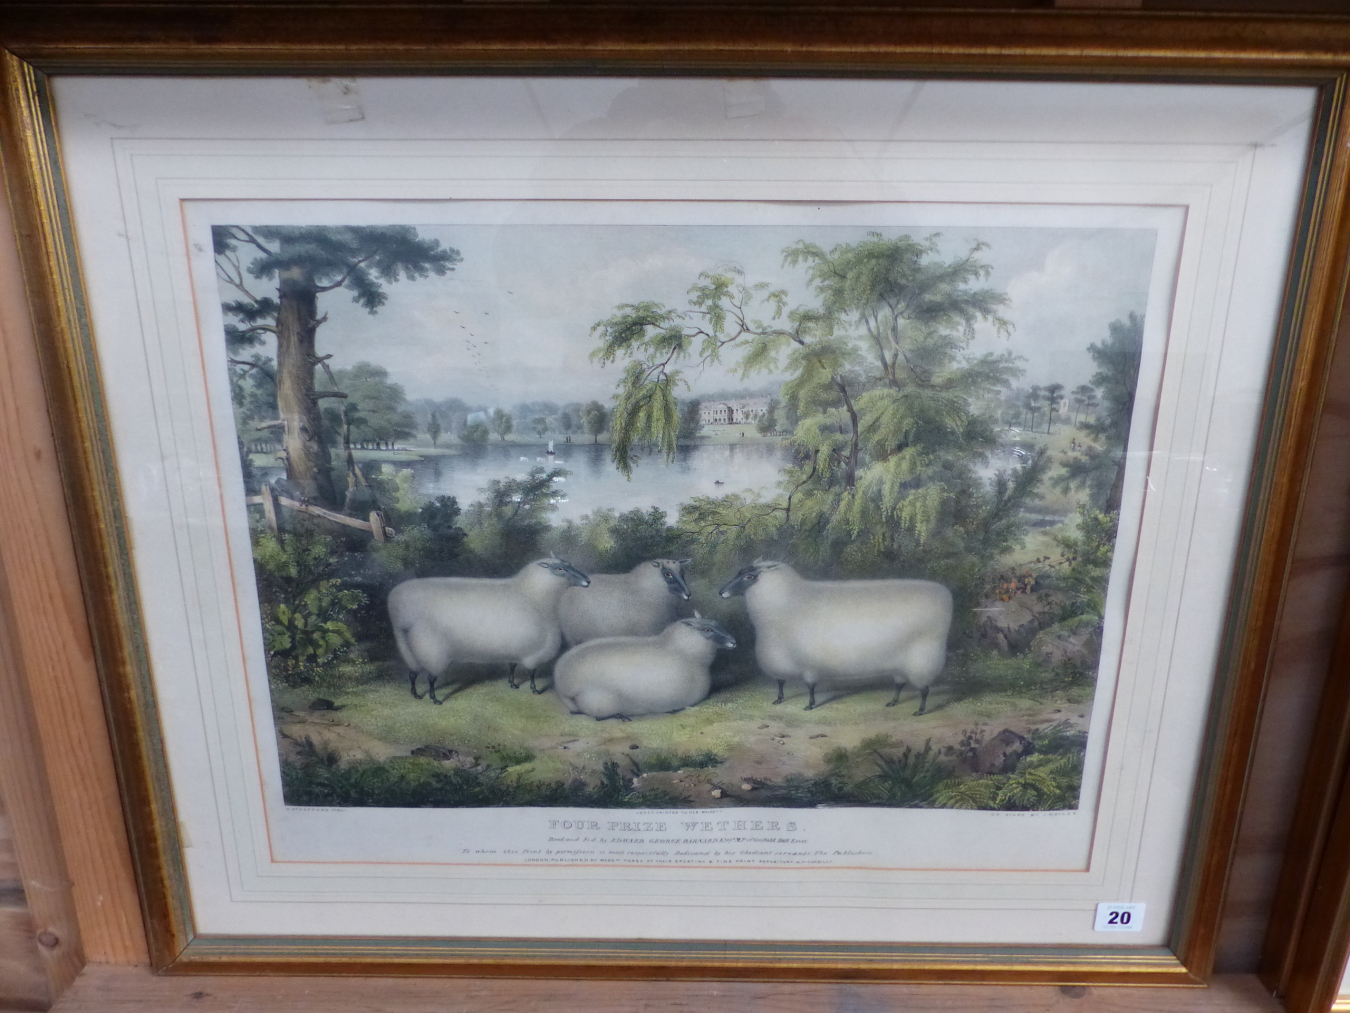 AFTER H. STAFFORD. A HAND COLOURED PRINT OF FOUR SHEEP. 41 x 52cms - Image 2 of 3